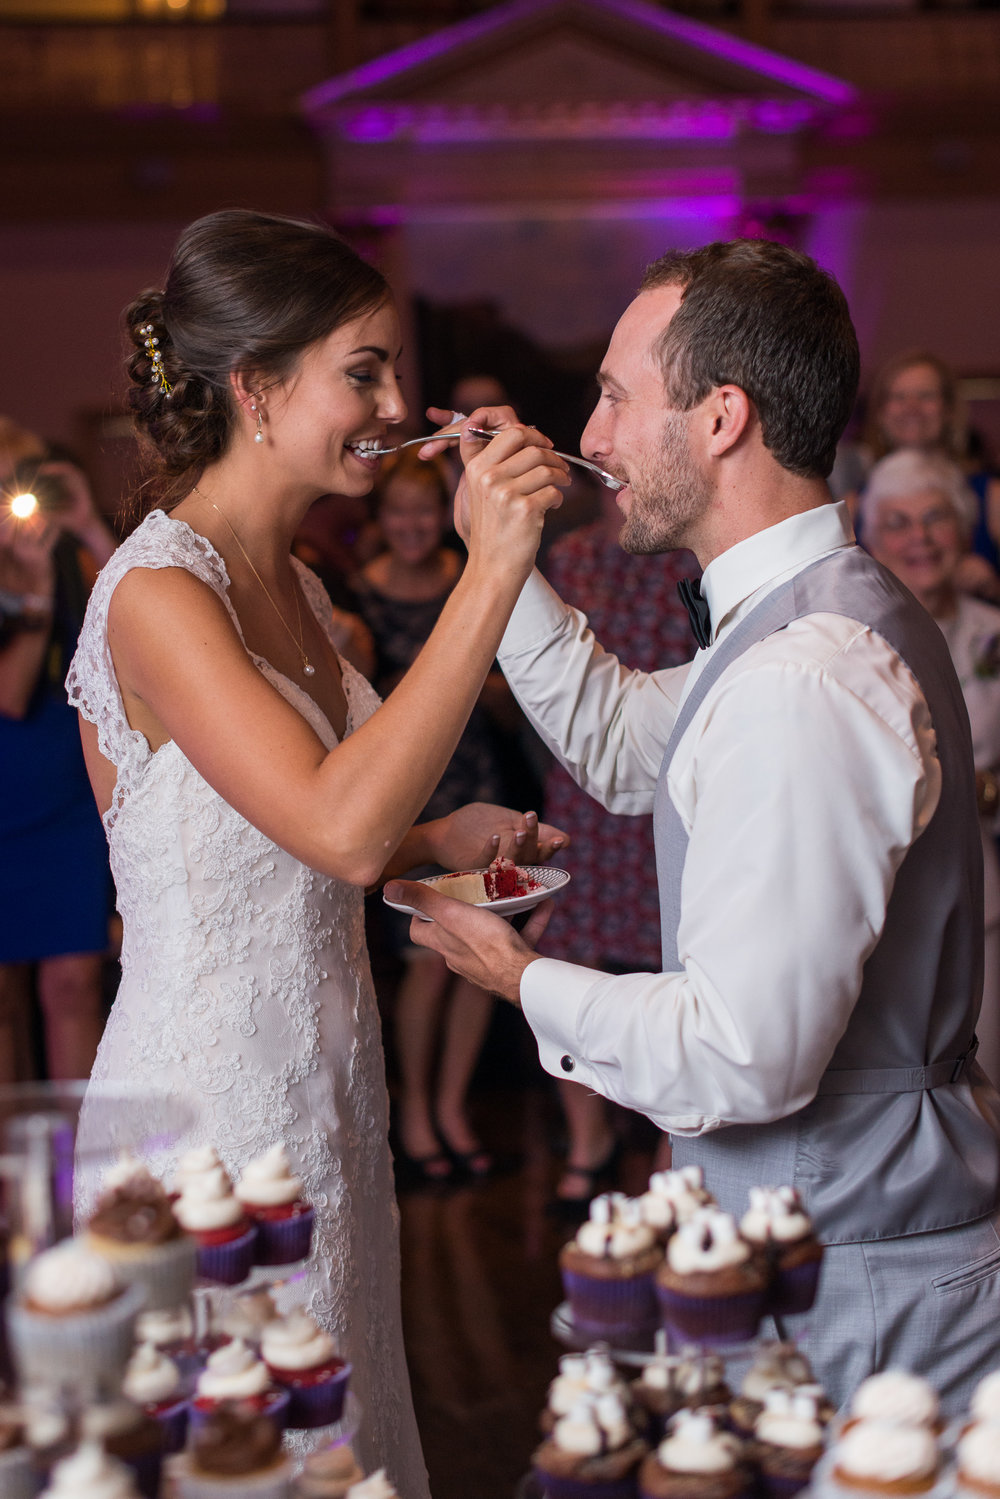 The bride and groom feed each other cake during their wedding reception in fairfax, virginia